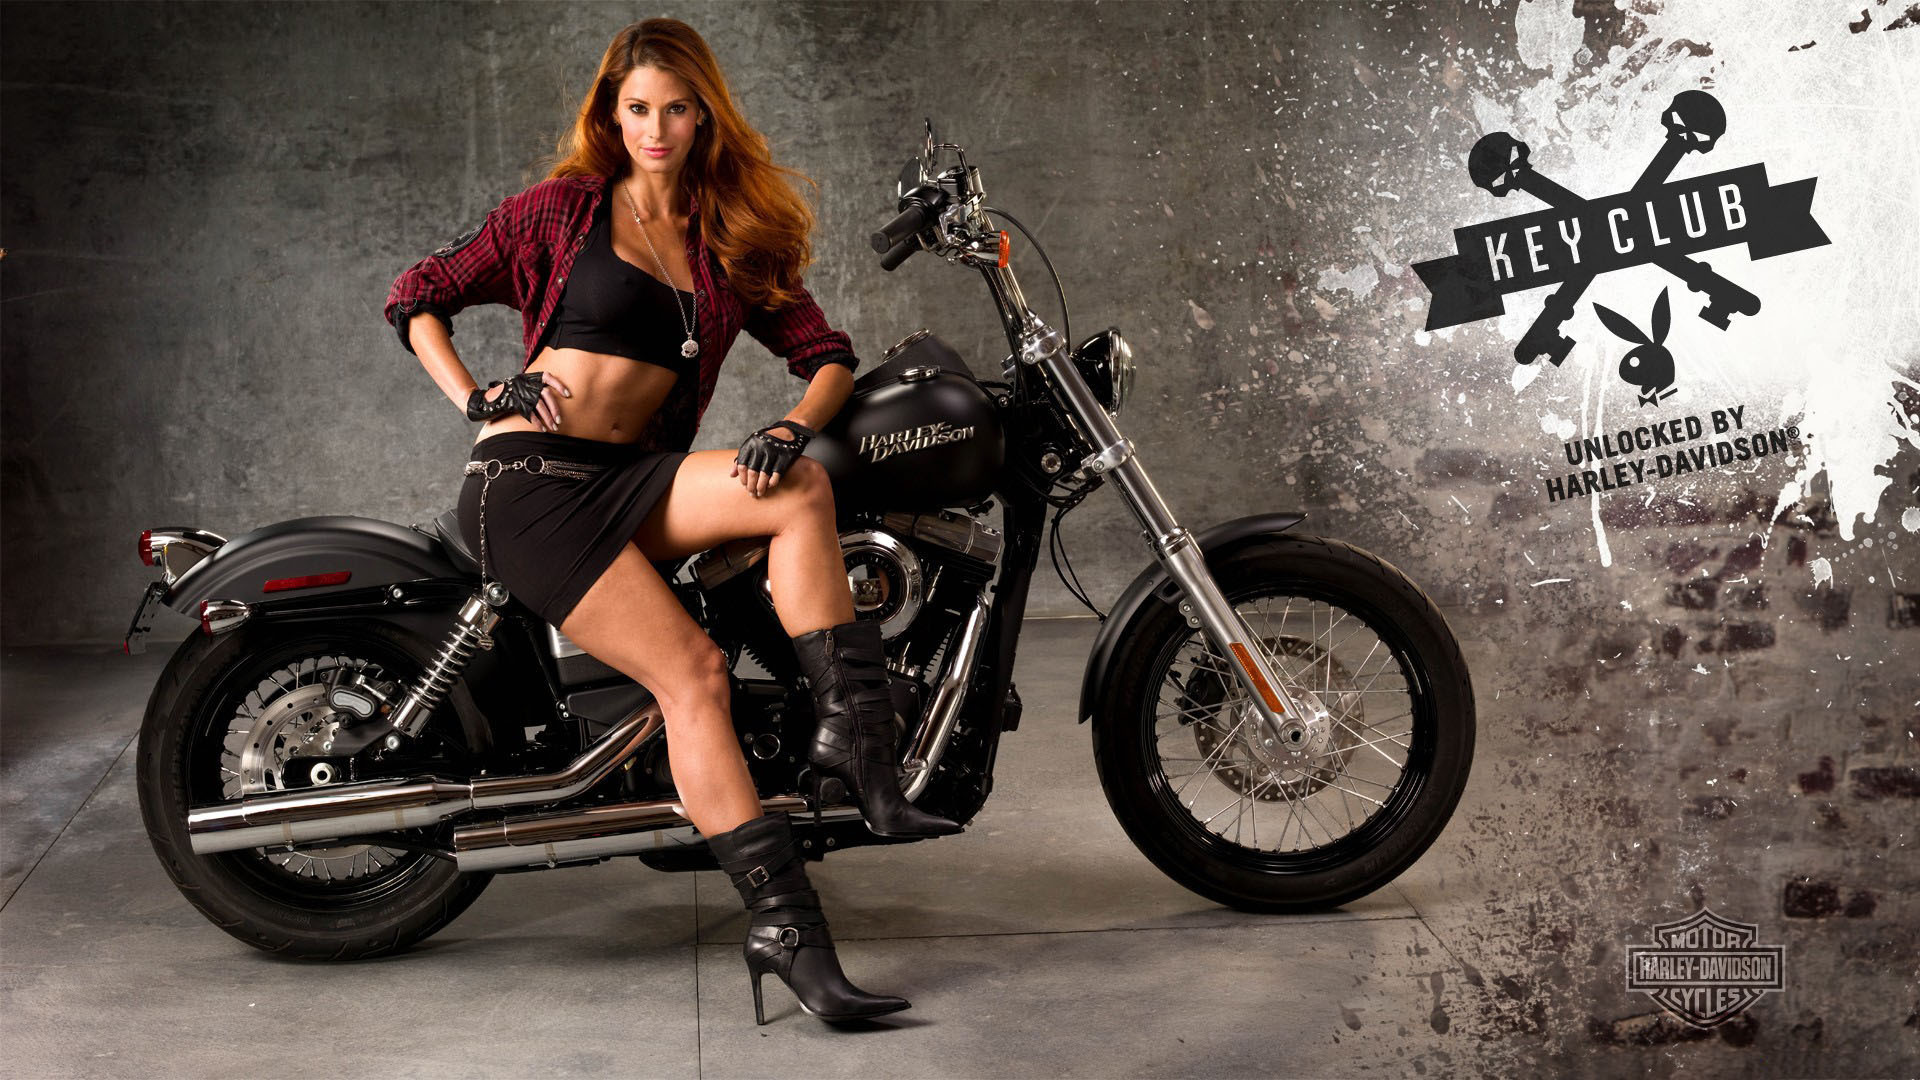 Best Looking Cars Wallpapers Chopper Girls Motorcycle Wallpaper 73 Images